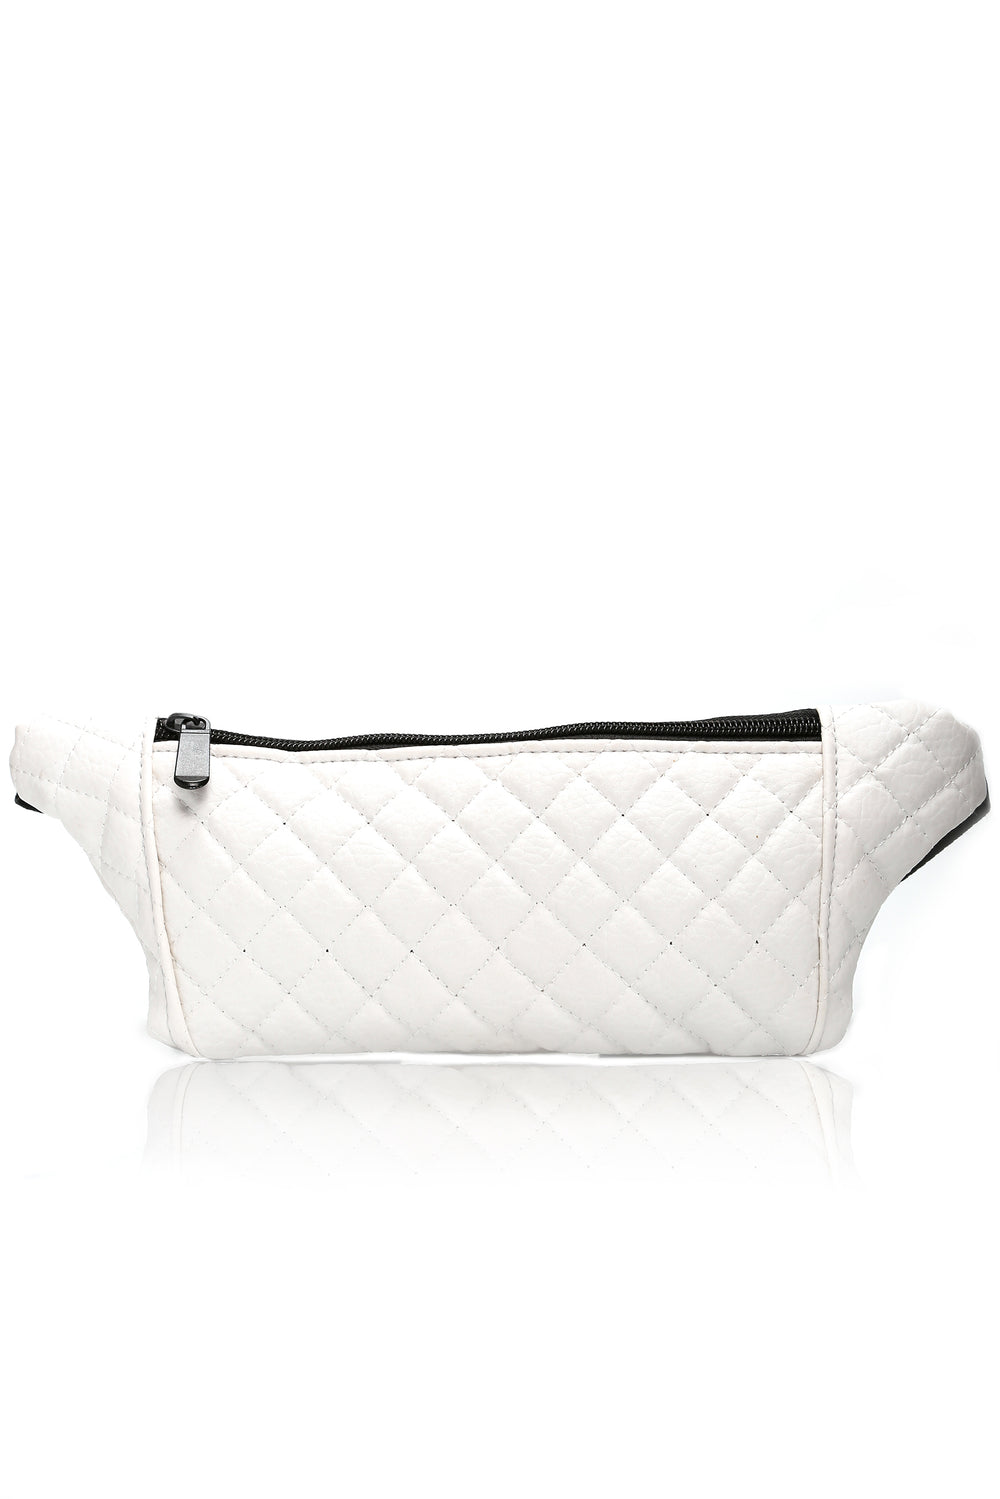 Quilt It Fanny Pack - White